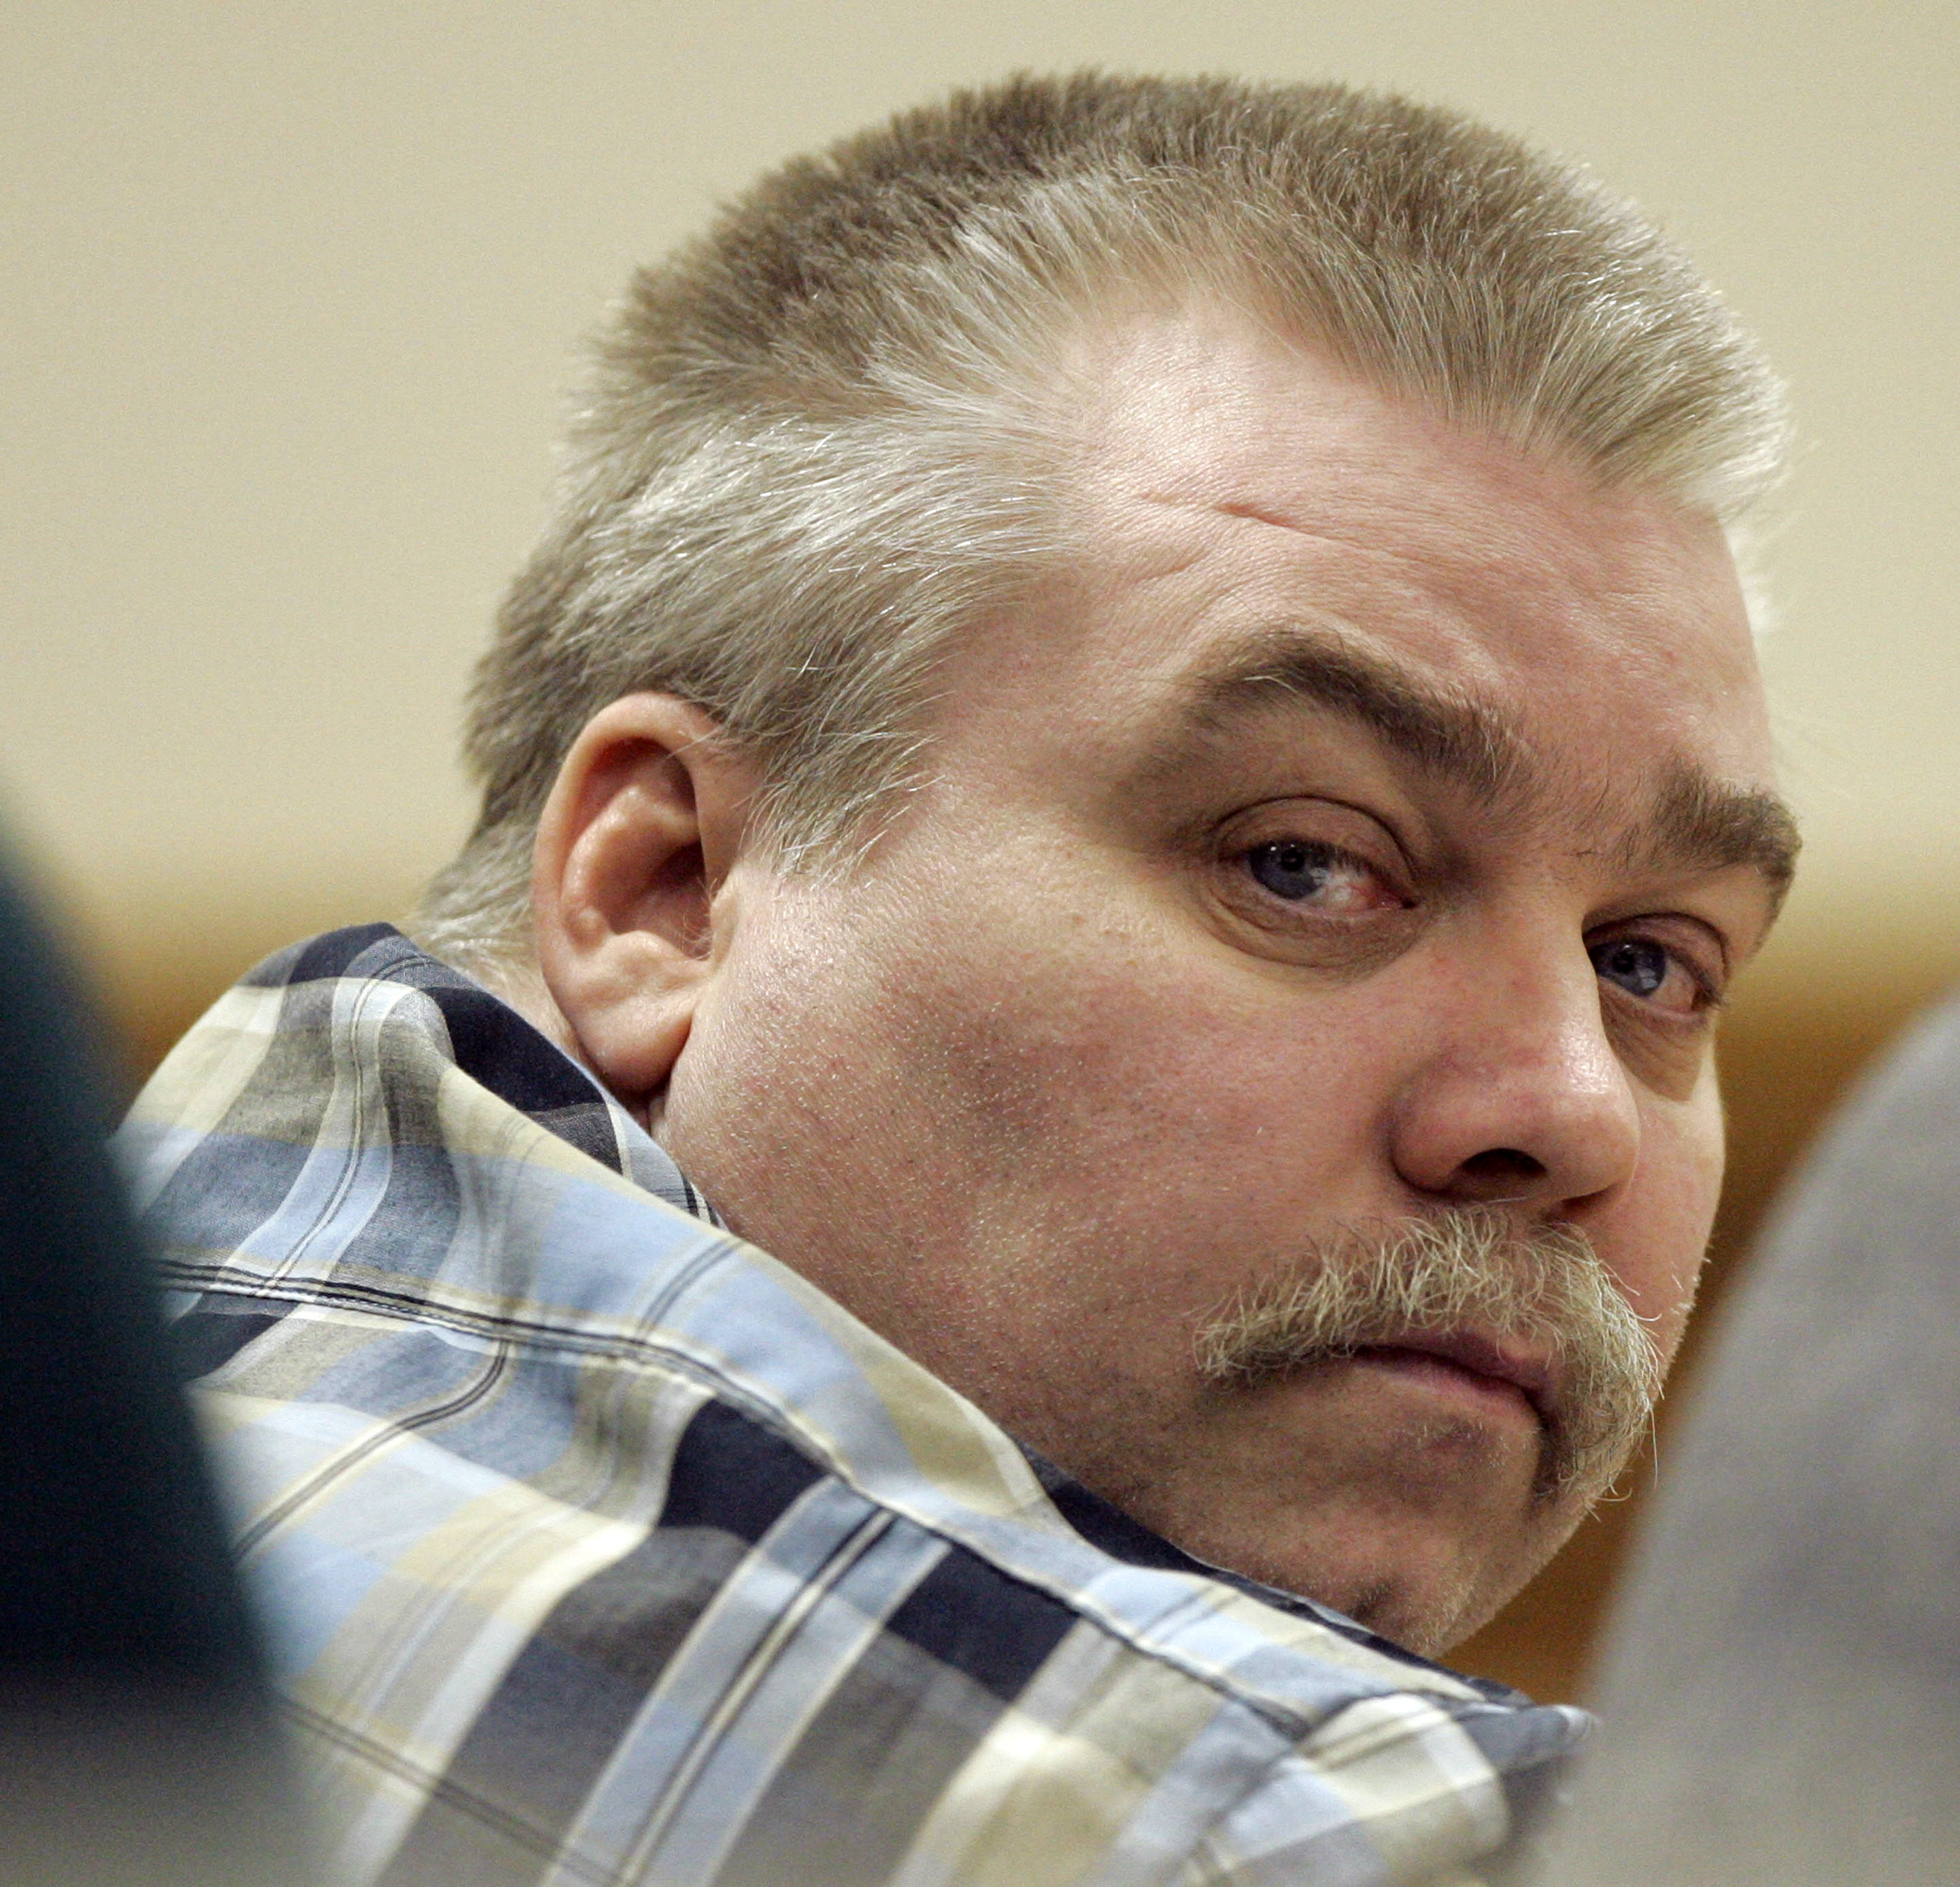 In this March 13, 2007 file photo, Steven Avery listens to testimony in the courtroom at the Calumet County Courthouse in Chilton, Wisc. (AP Photo/Morry Gash, File)